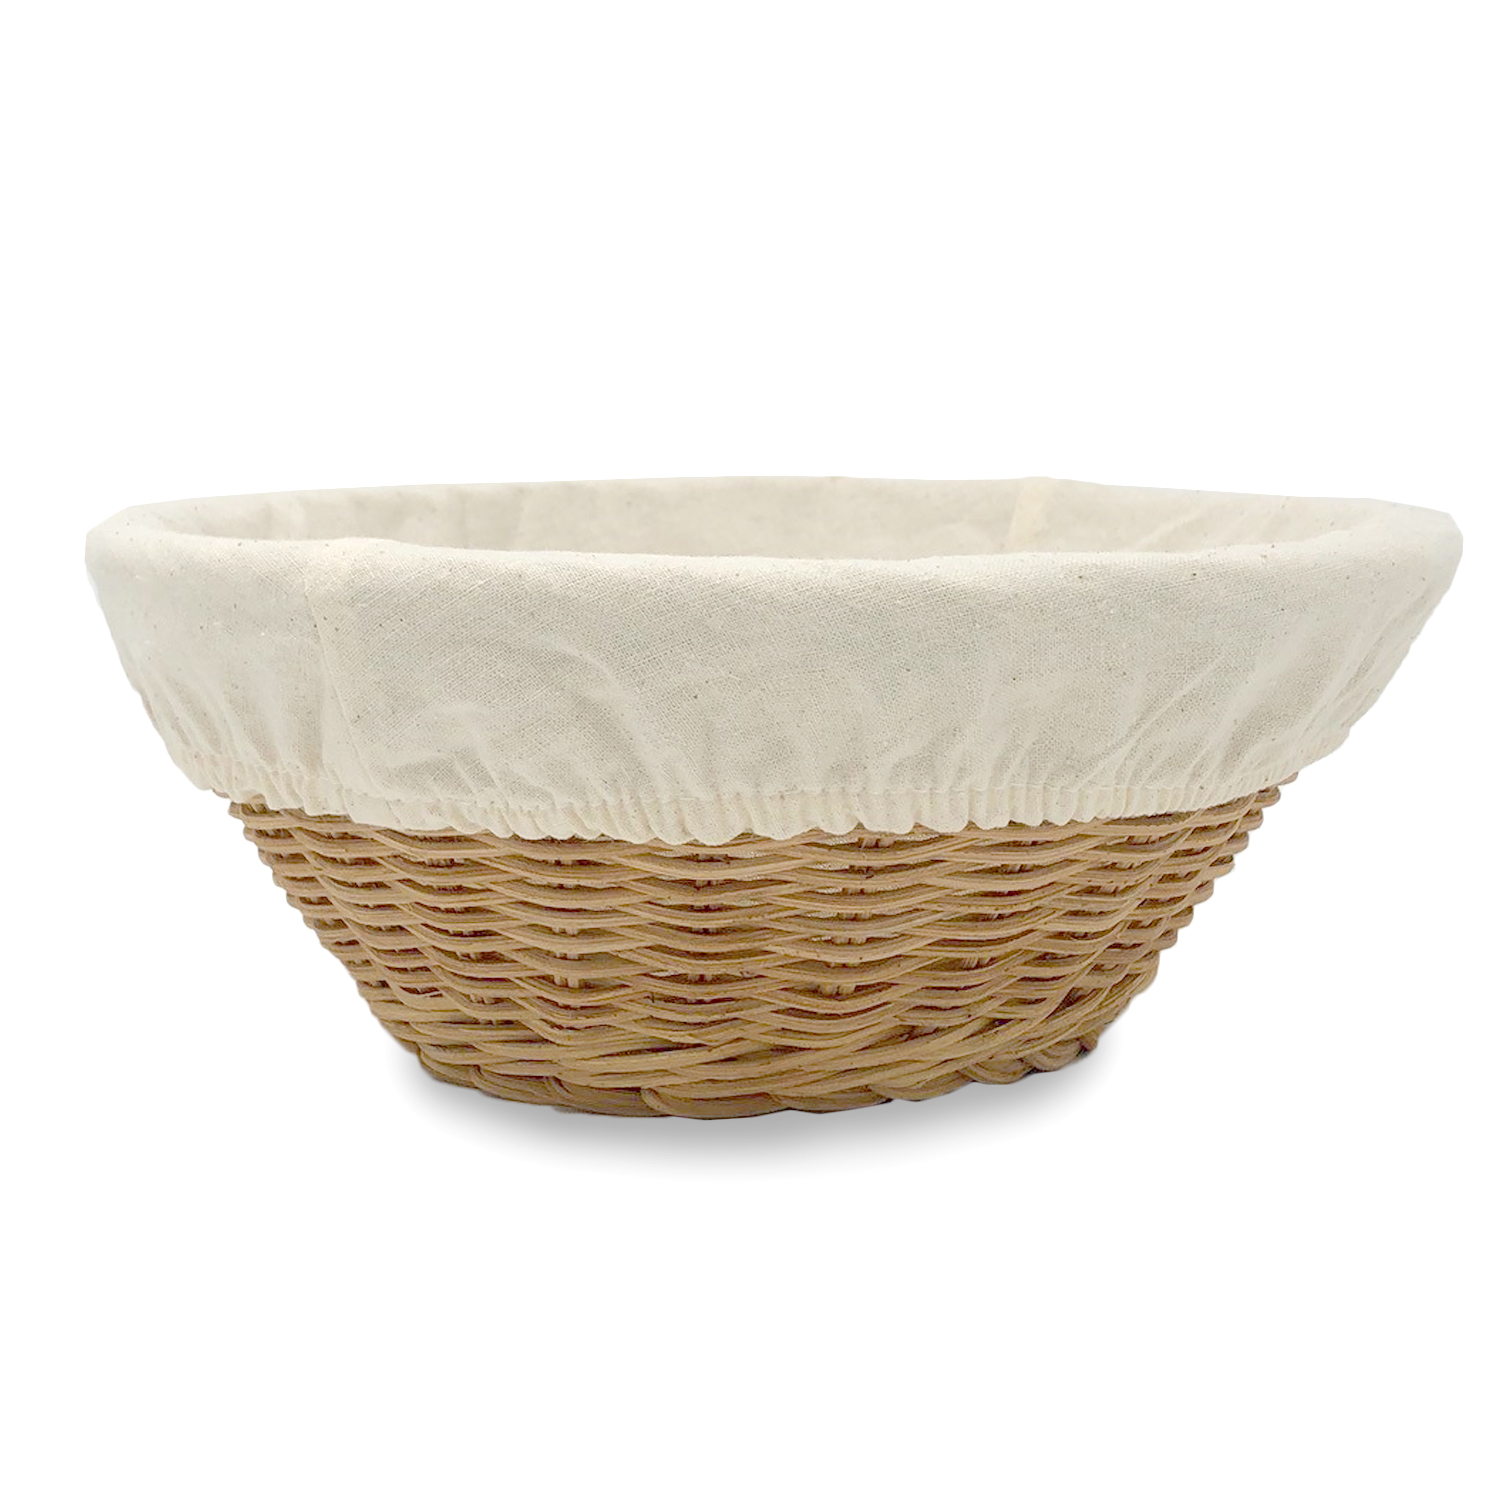 Medium Round Rattan Utility Basket with Cloth Liner -Natural 8in